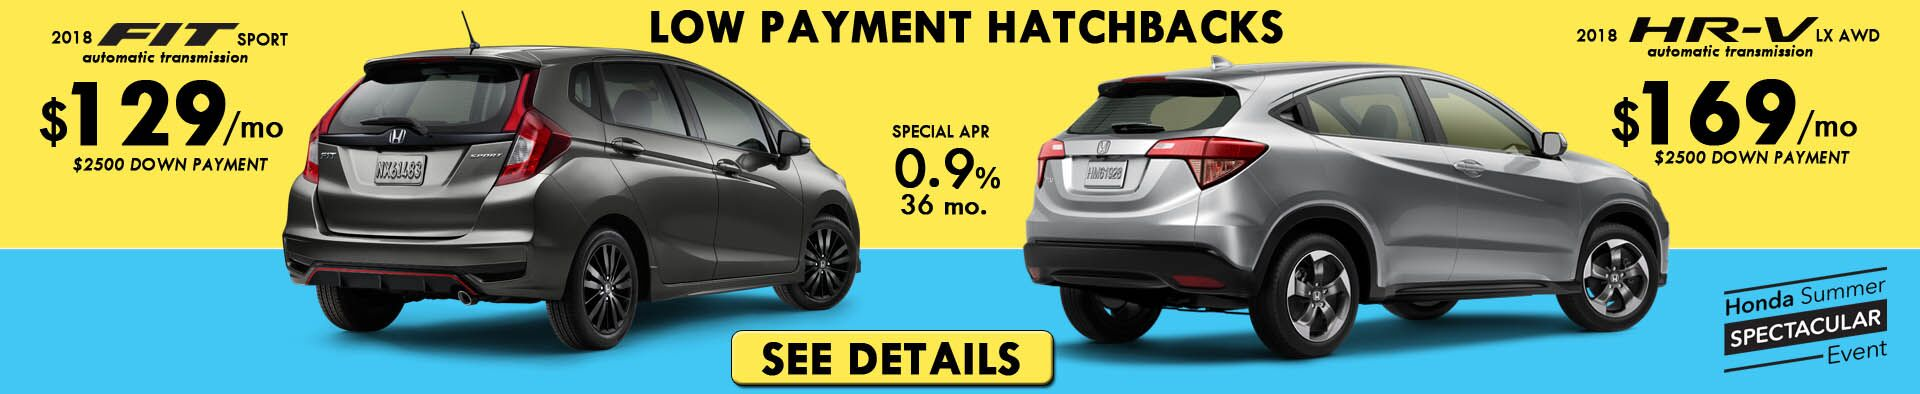 Low Payments On Hatchbacks